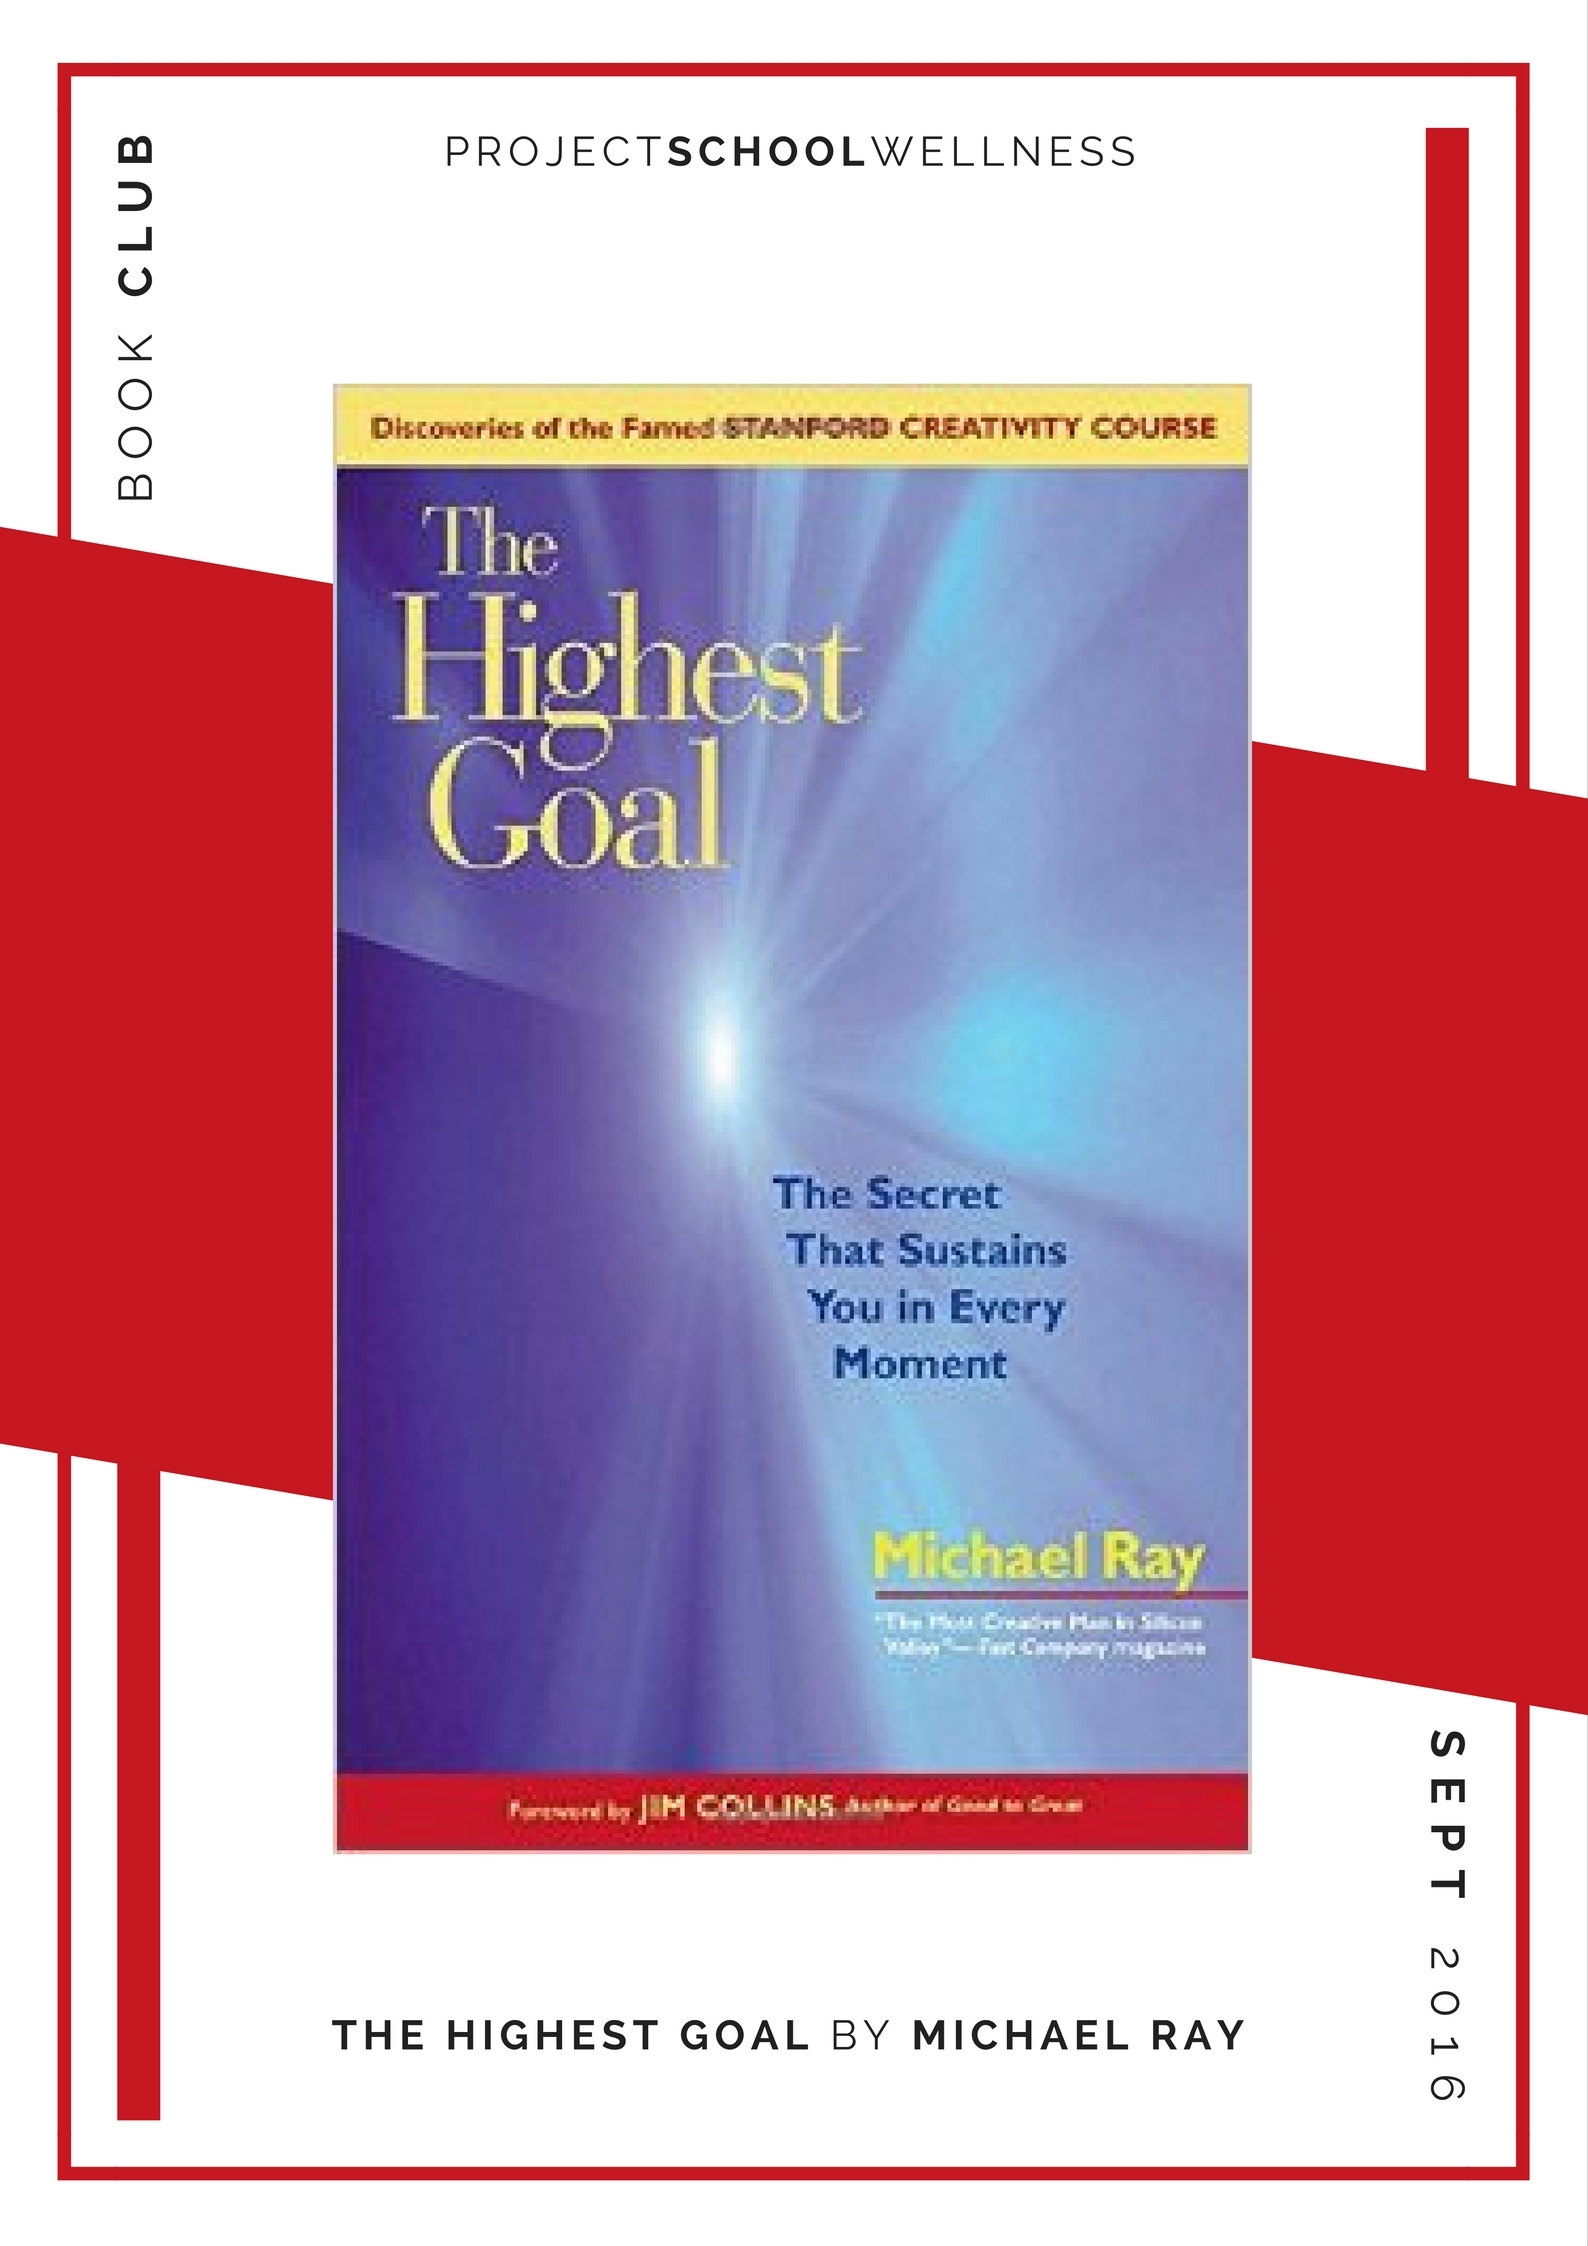 Michael Ray, The Highest Goal - Project School Wellness' Teacher Book Club, must read books for every teacher!